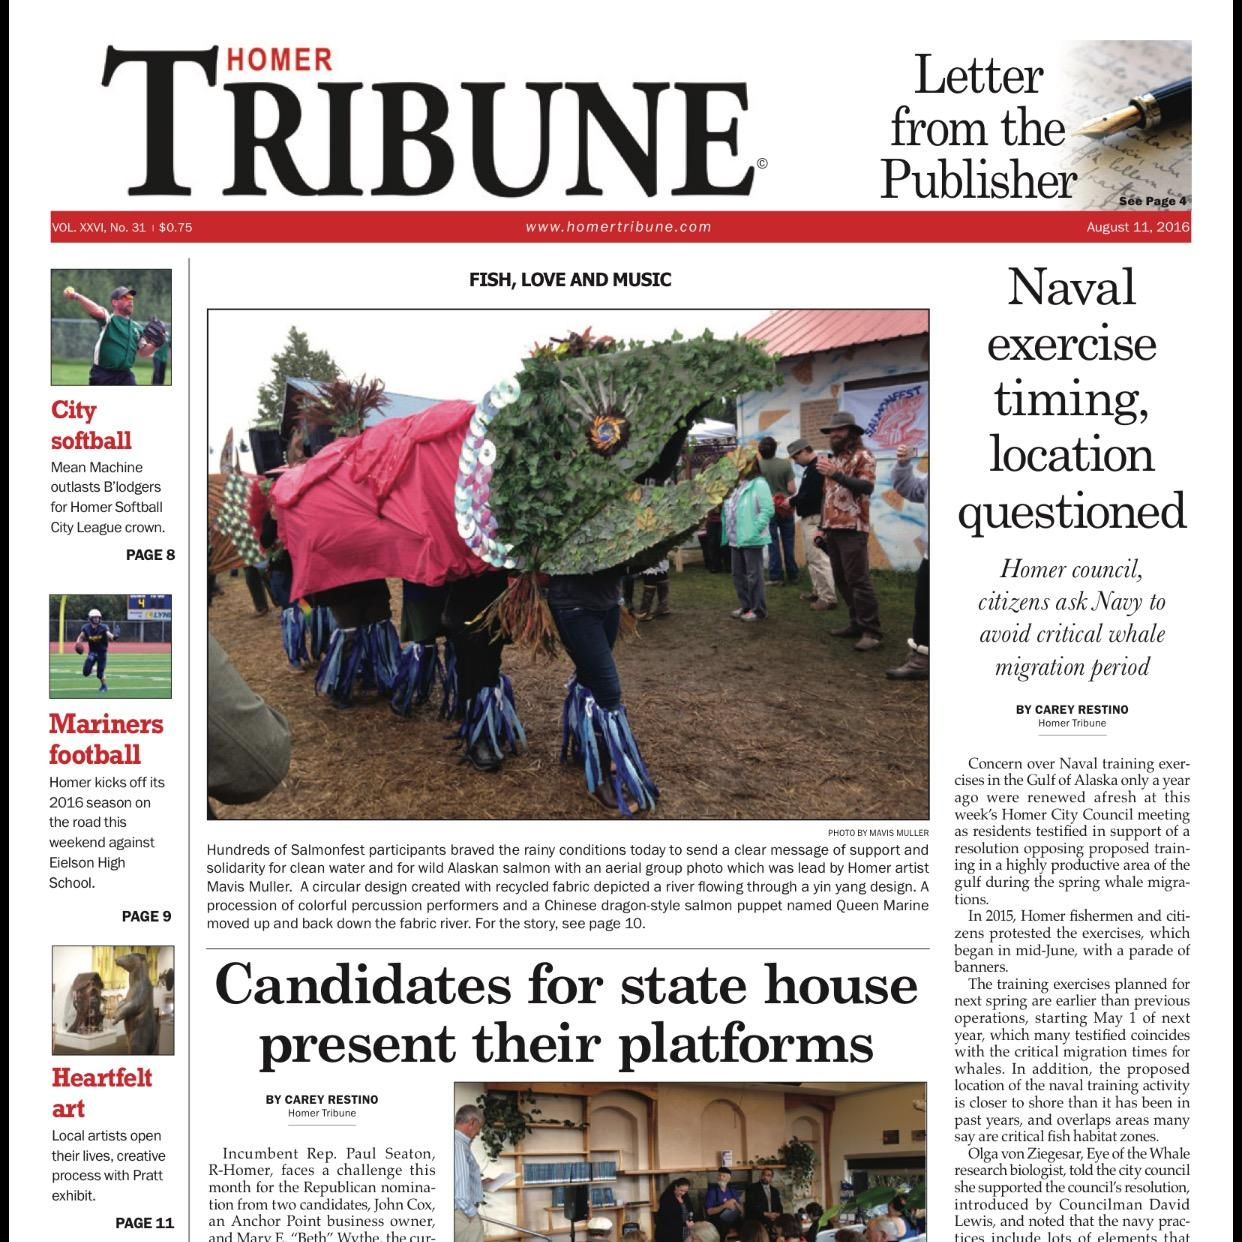 The first print issue of the Homer Tribune since June came out on June 11. (Image Courtesy of Homer Tribune)